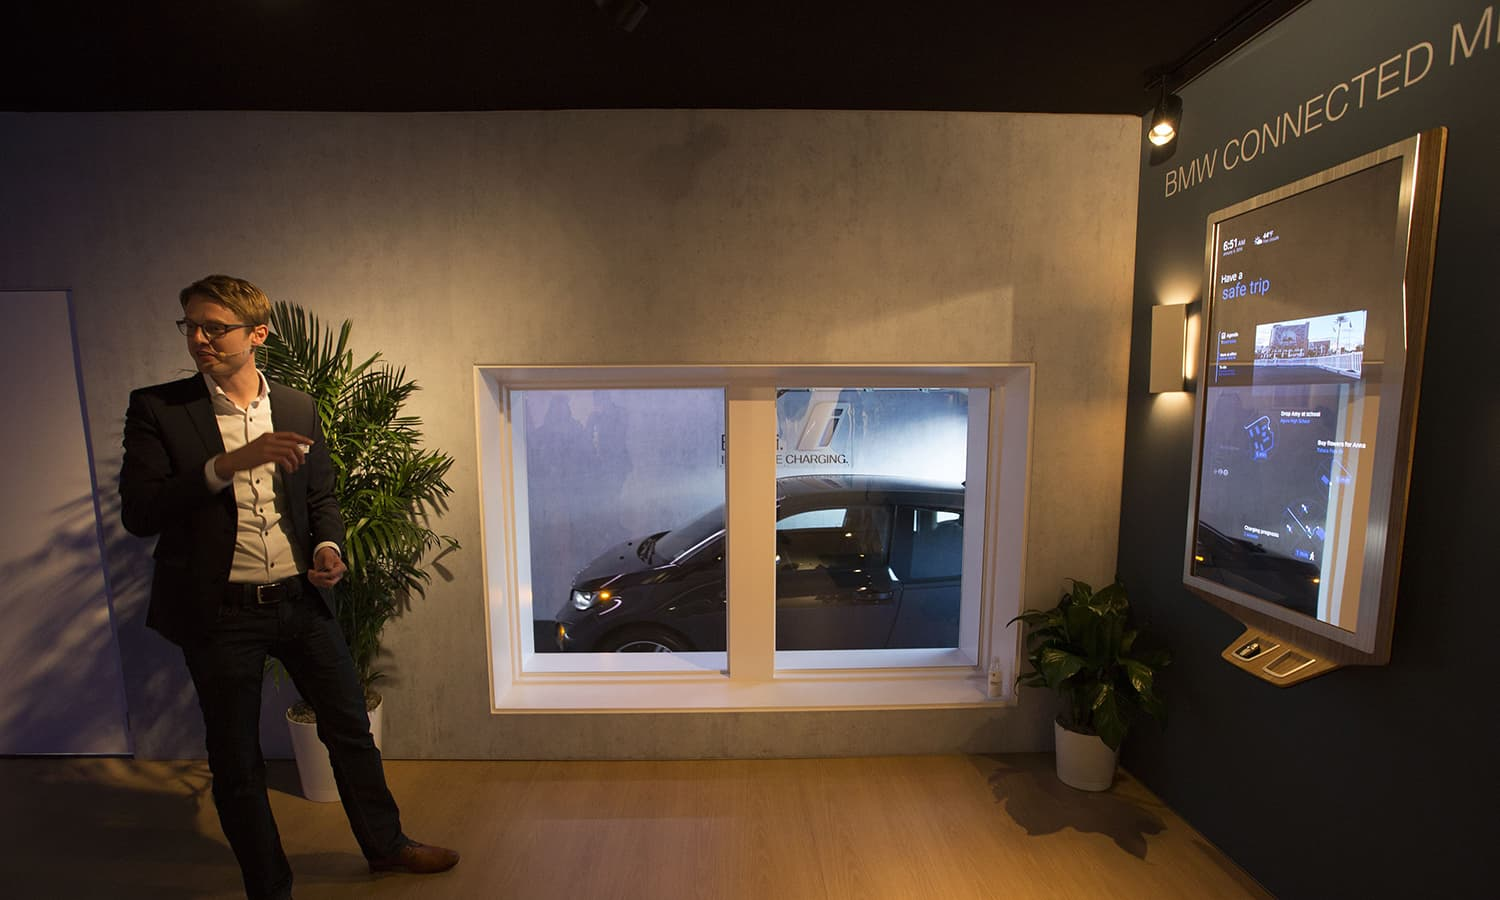 A BMW i3 electric car drives autonomously from a simulated garage where it had been automatically charged by an inductive charging station after an exhibitor simply picks up the keys from below the BMW Connected Mirror. — AFP